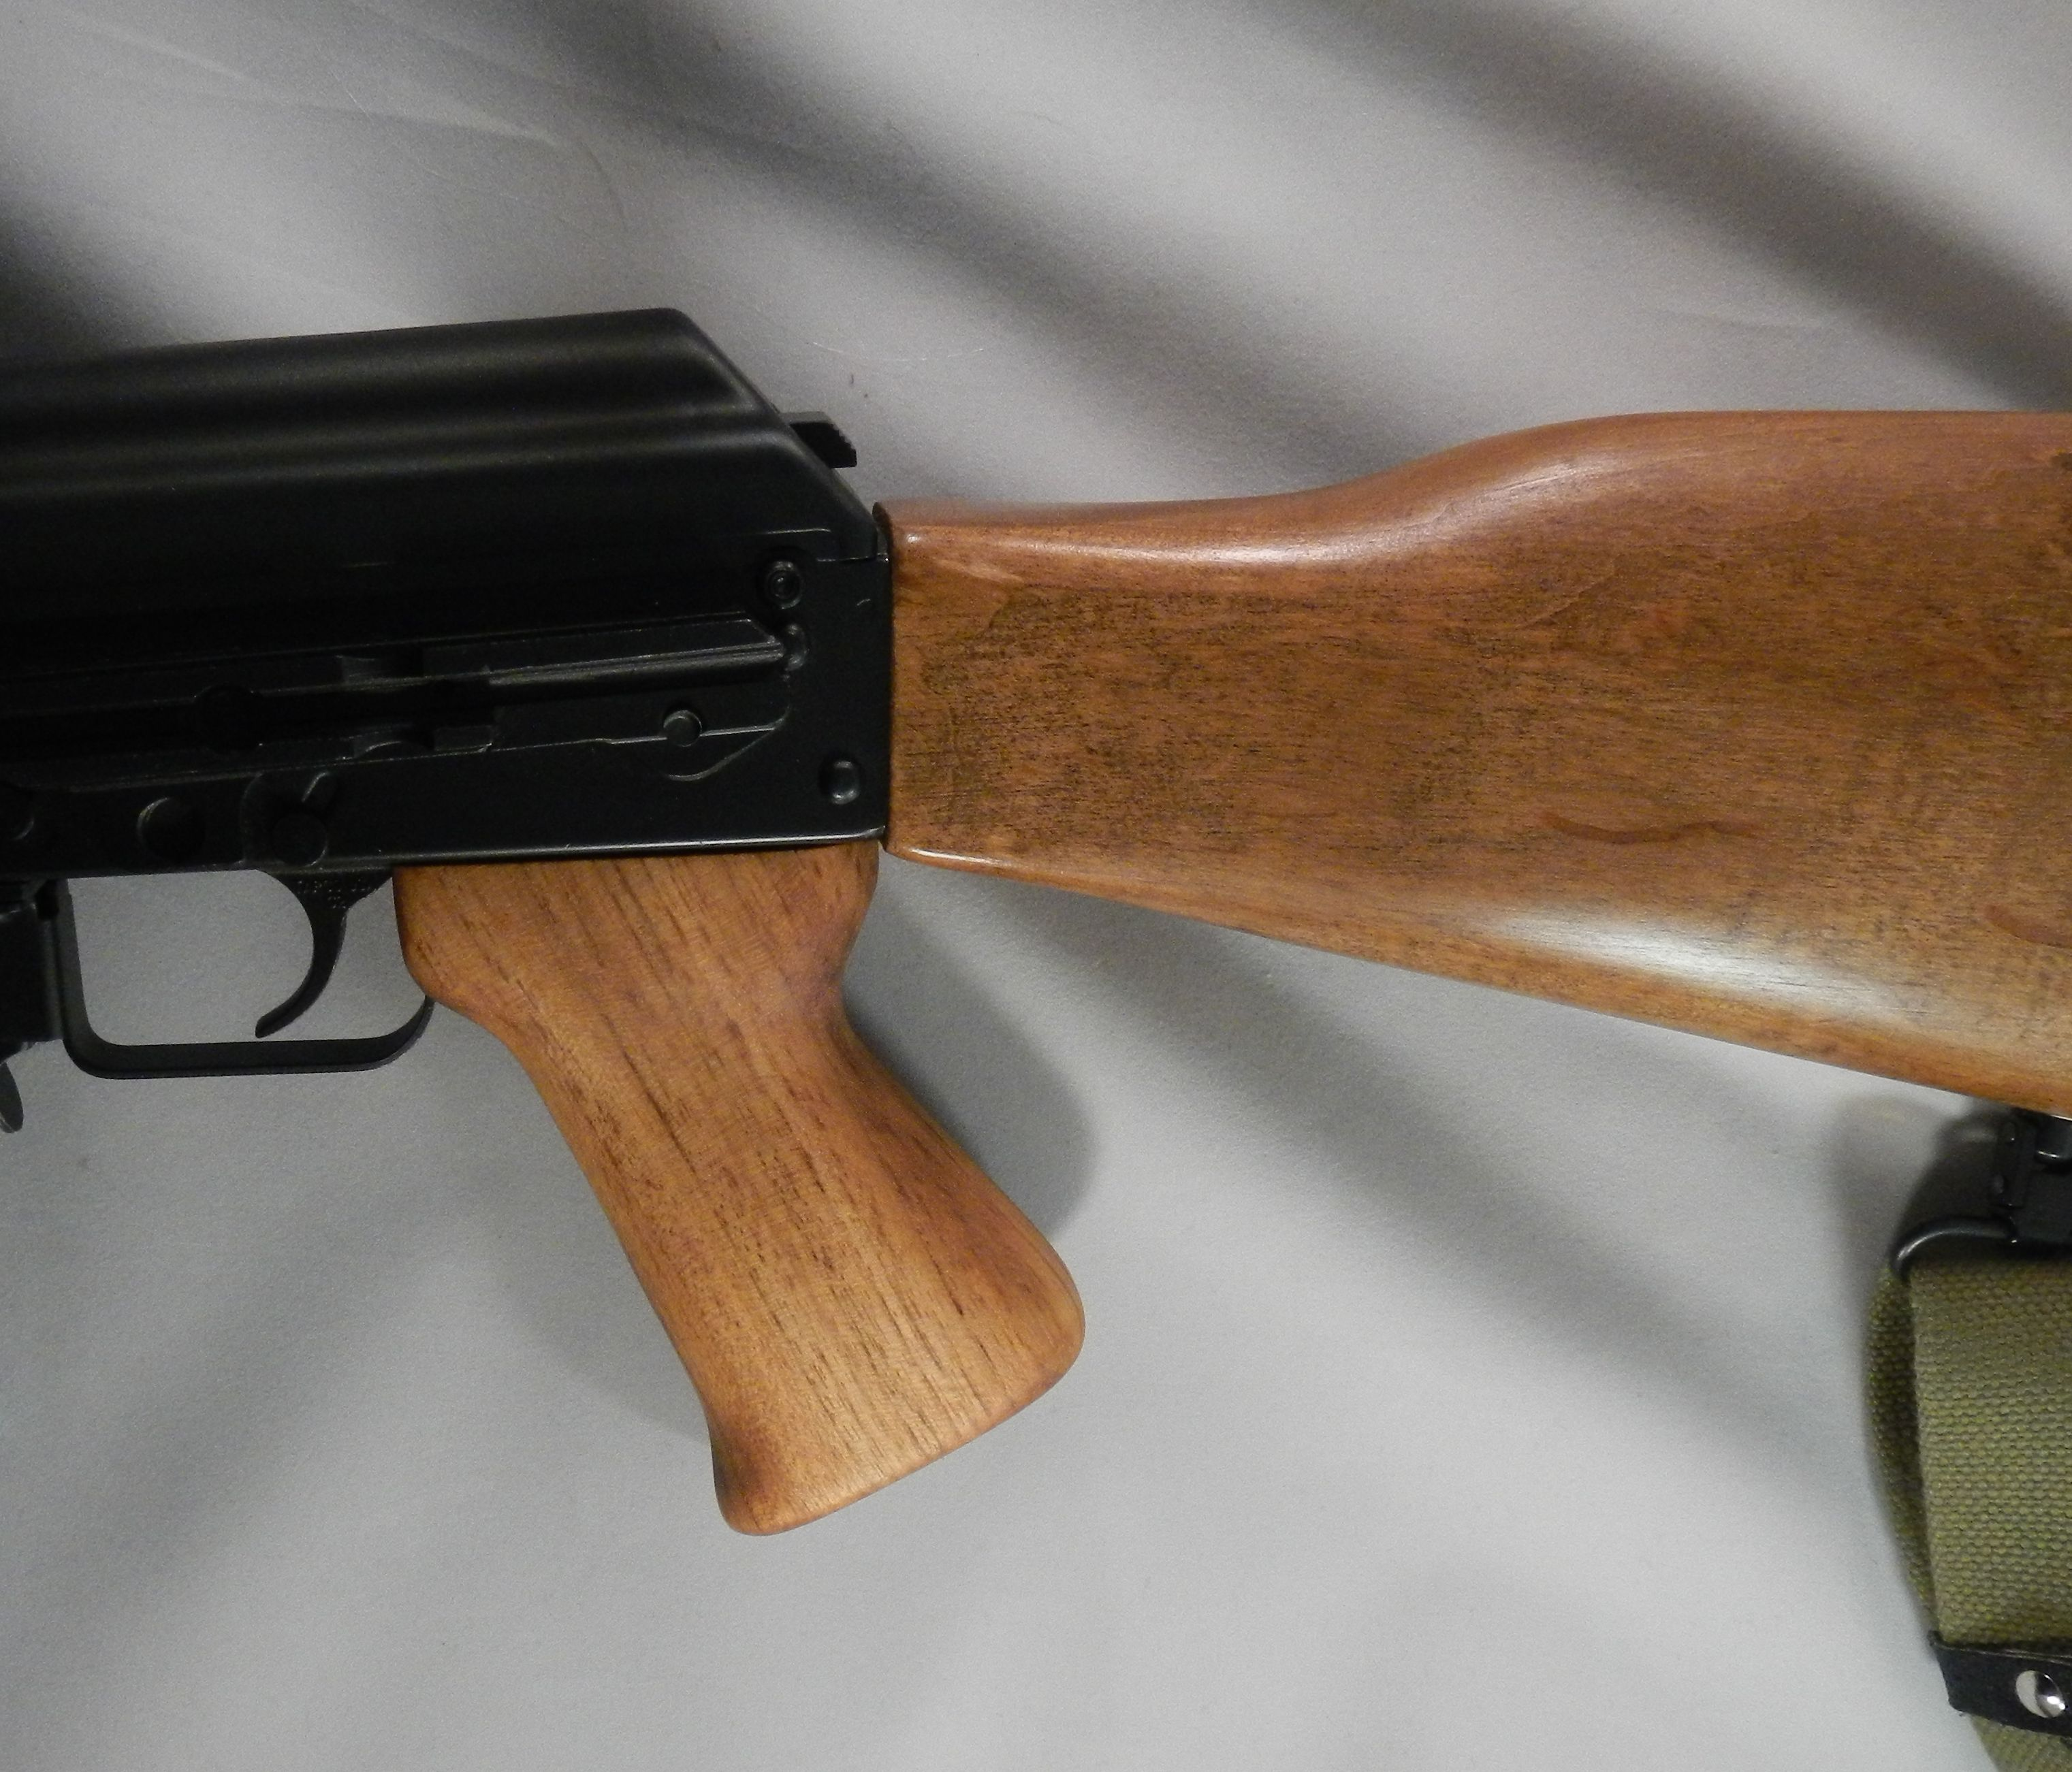 The plastic grip on this Zastava NPAP was replaced with a